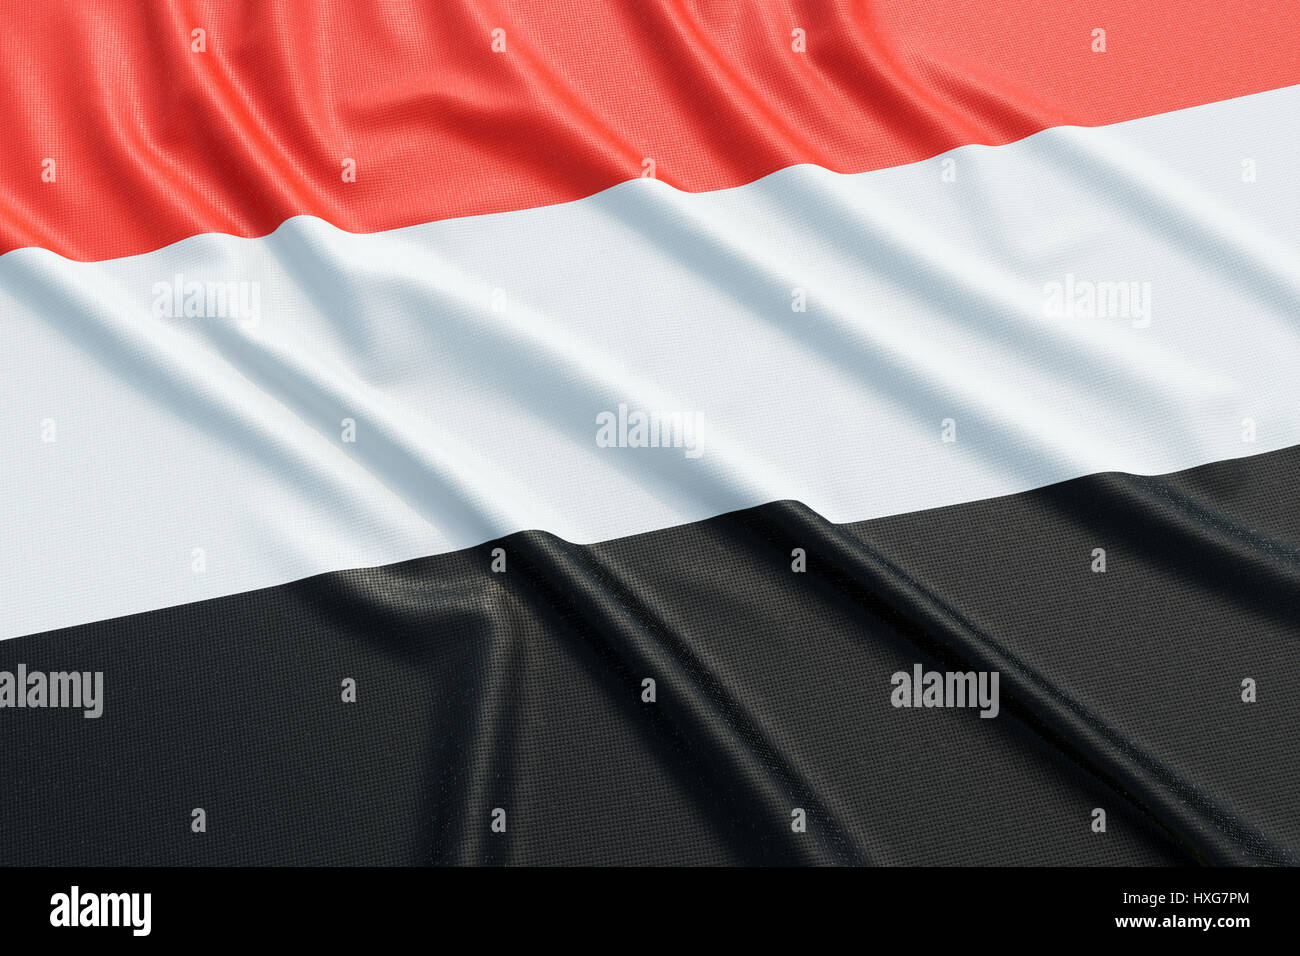 Yemen flag. Wavy fabric high detailed texture. 3d illustration rendering Stock Photo